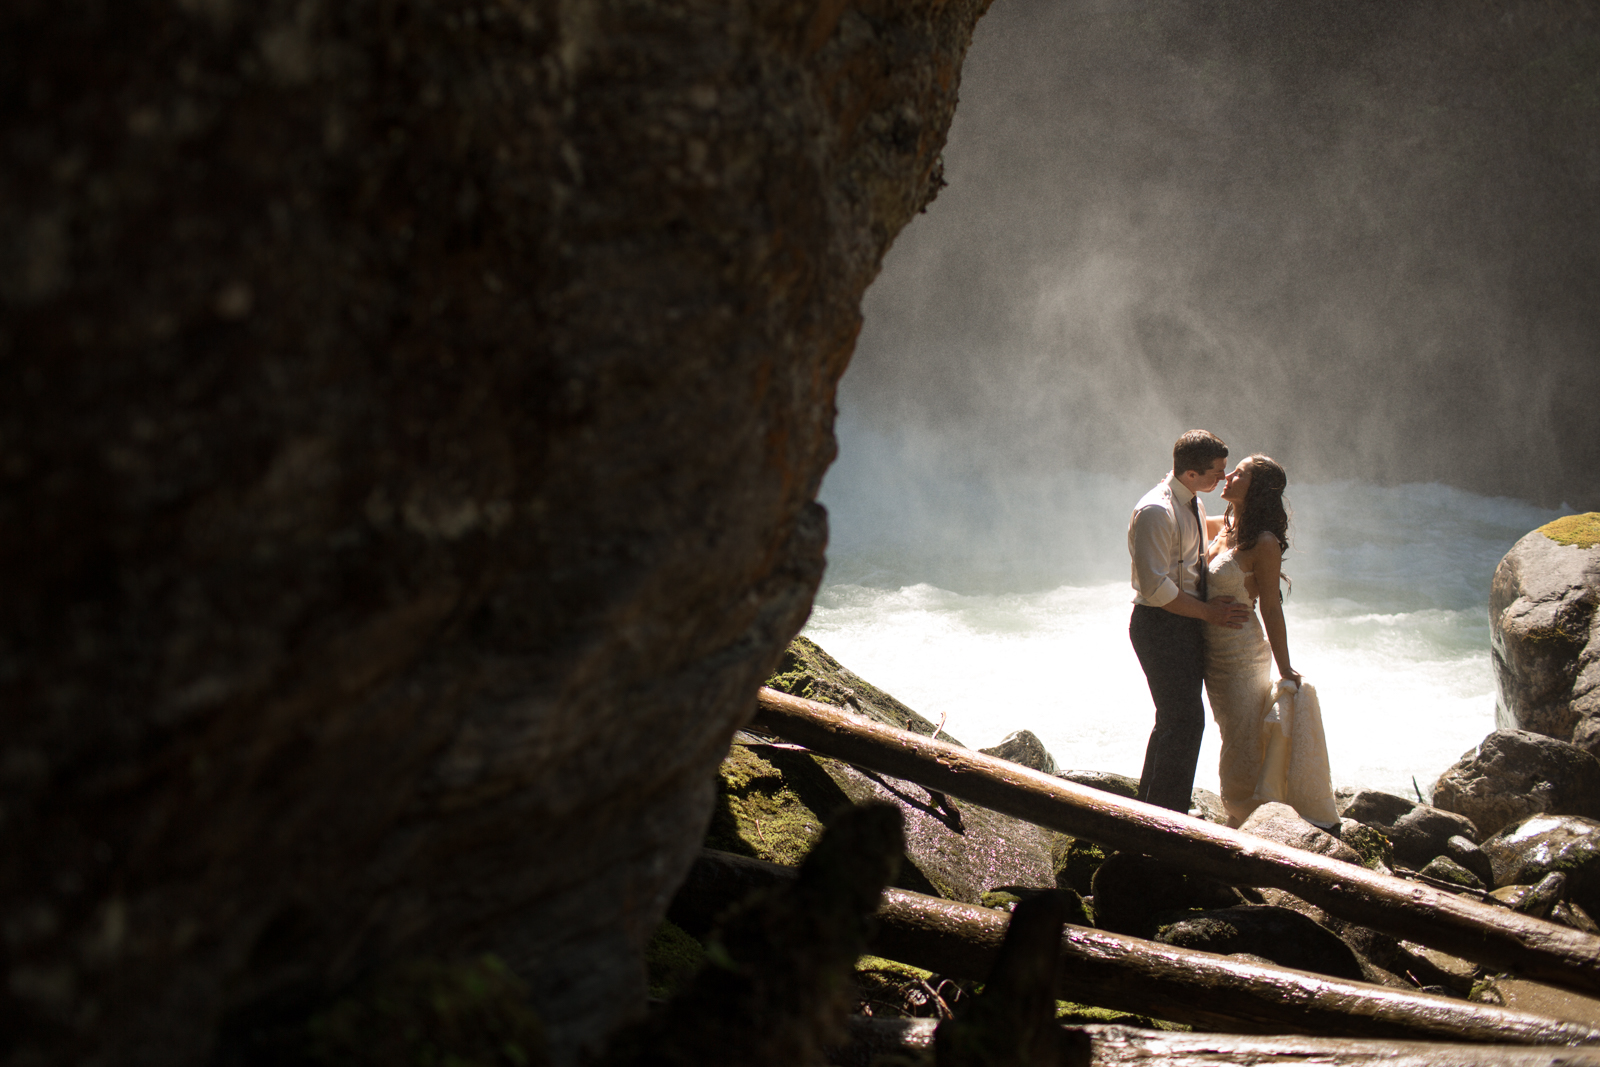 50Andrew_Pavlidis_Photography_Jess_and_Tristan_Revelstoke_Elopement_Calgary_Wedding_Photographer-8326